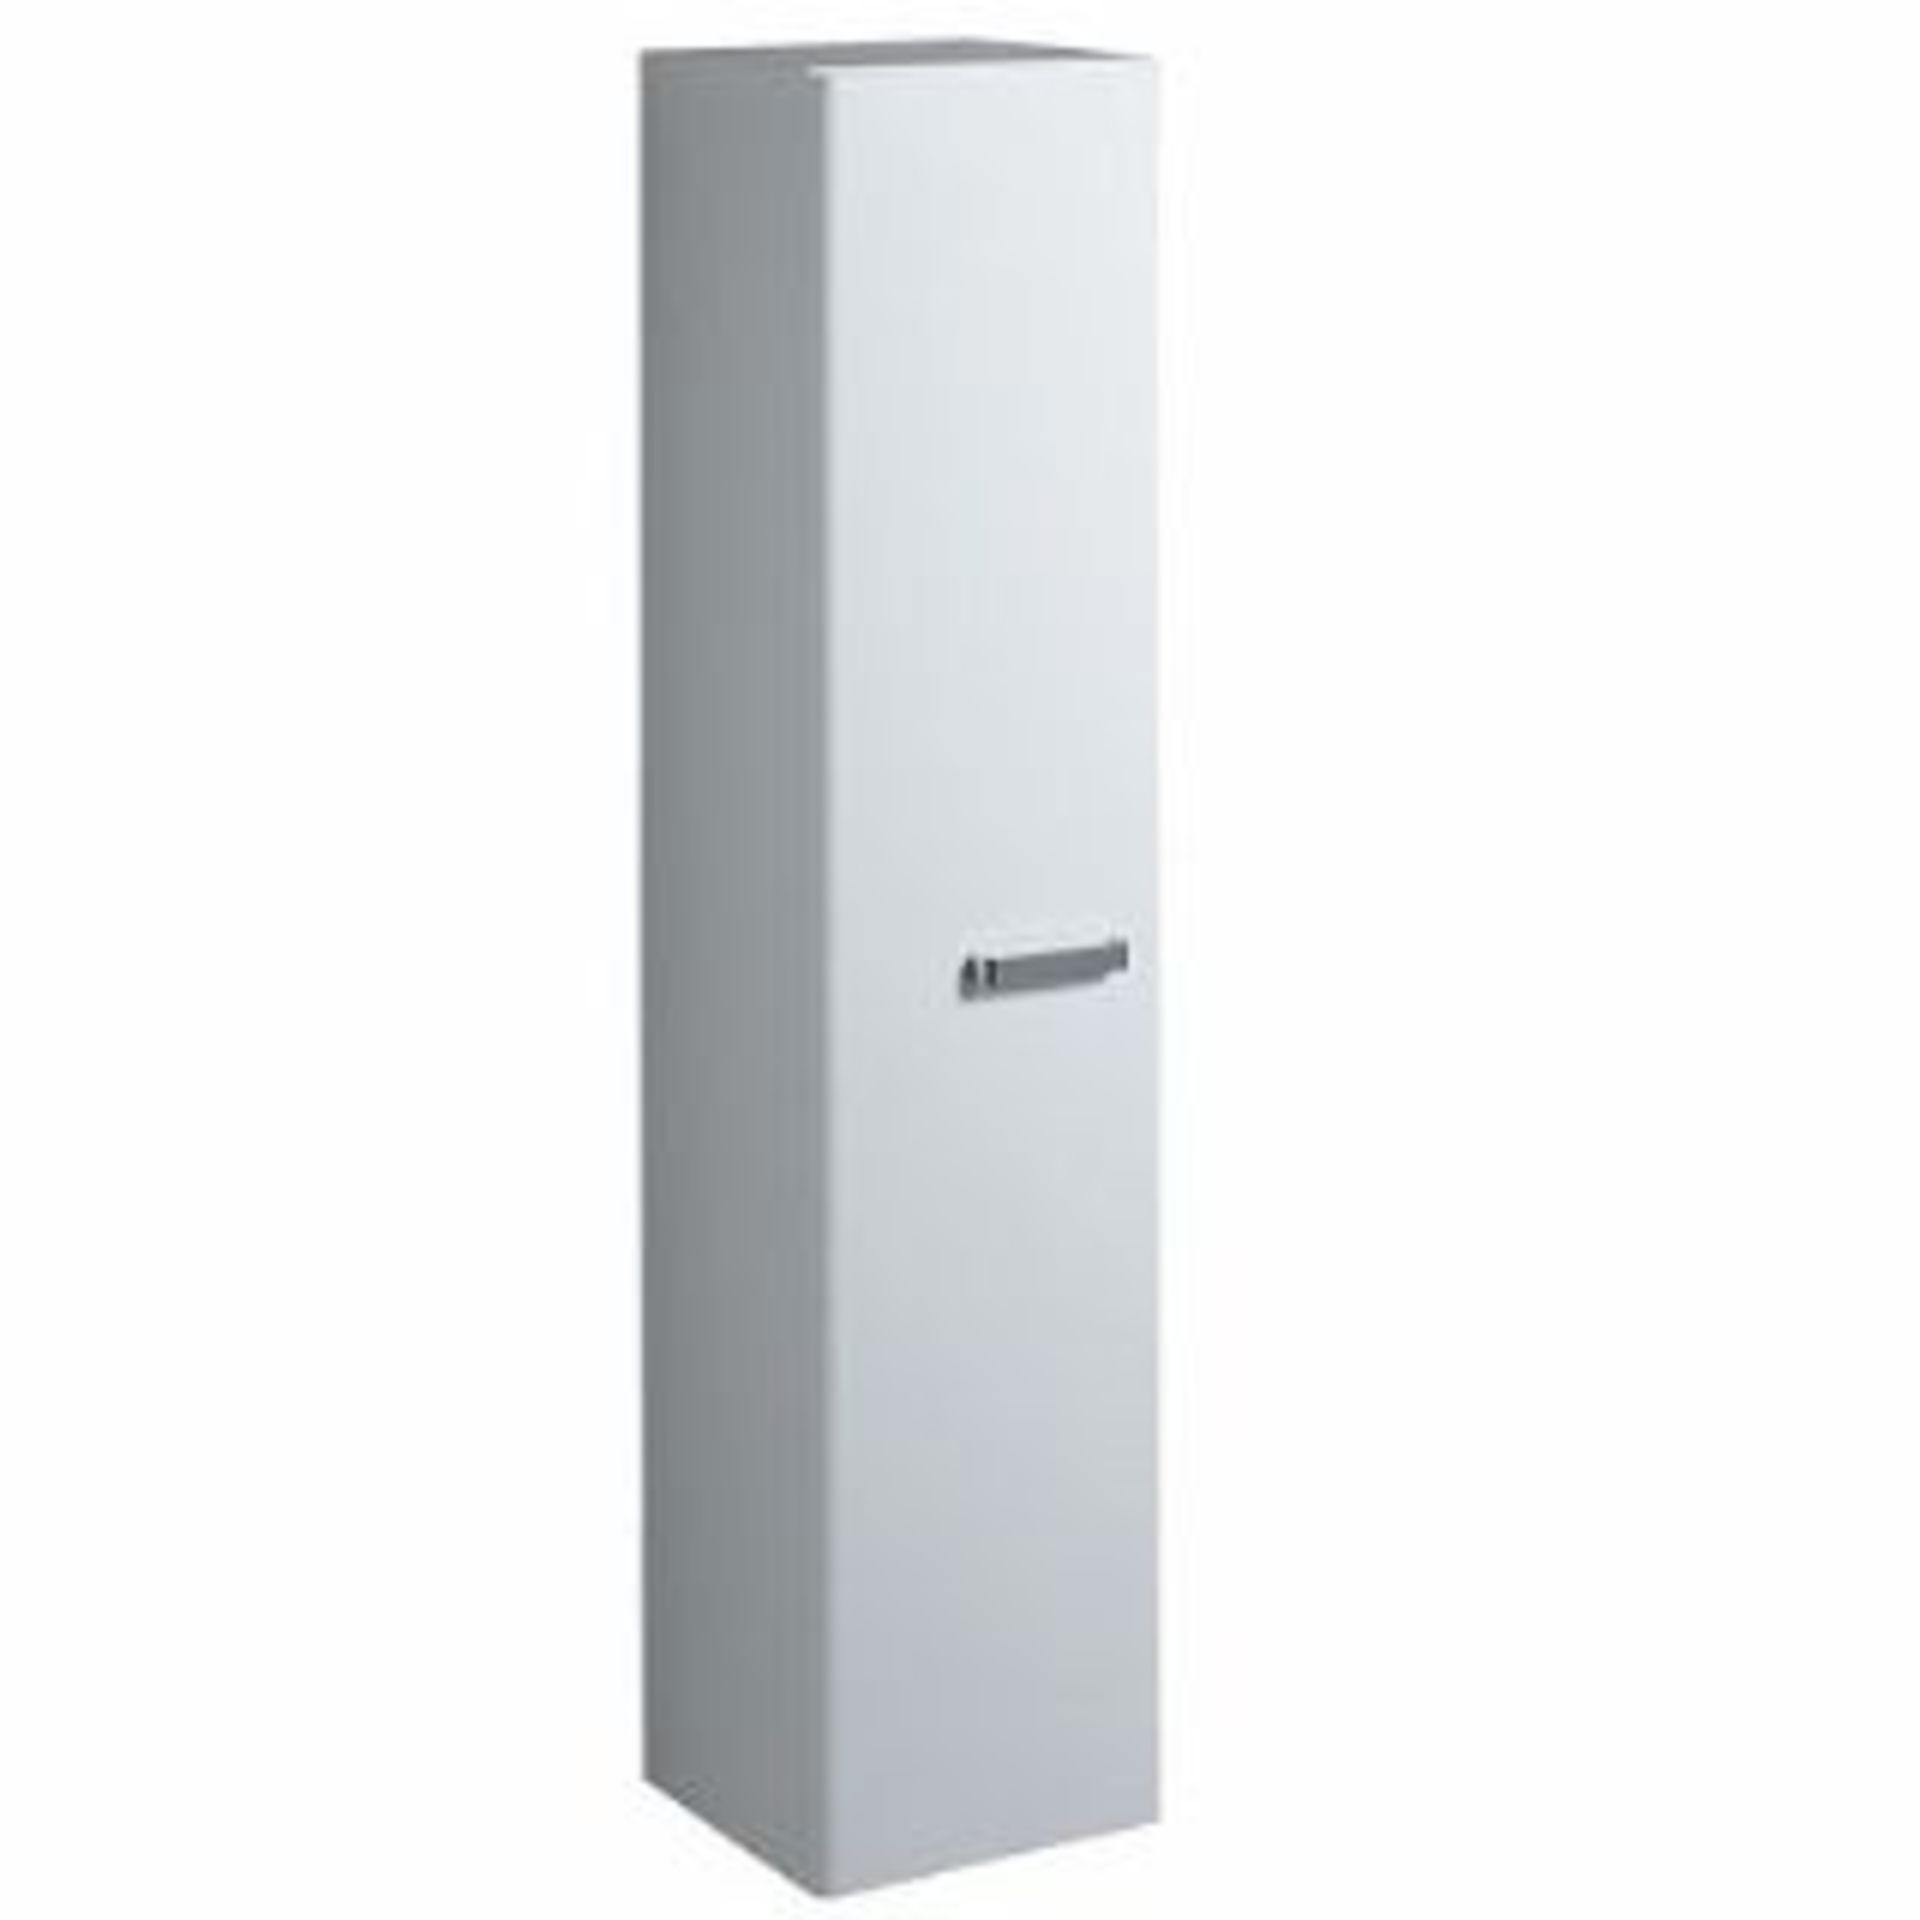 Lot 845 - Brand New (DE100) Twyford 1730mm White Tall Furniture Unit. RRP £863.99. White gloss finish Wall mou